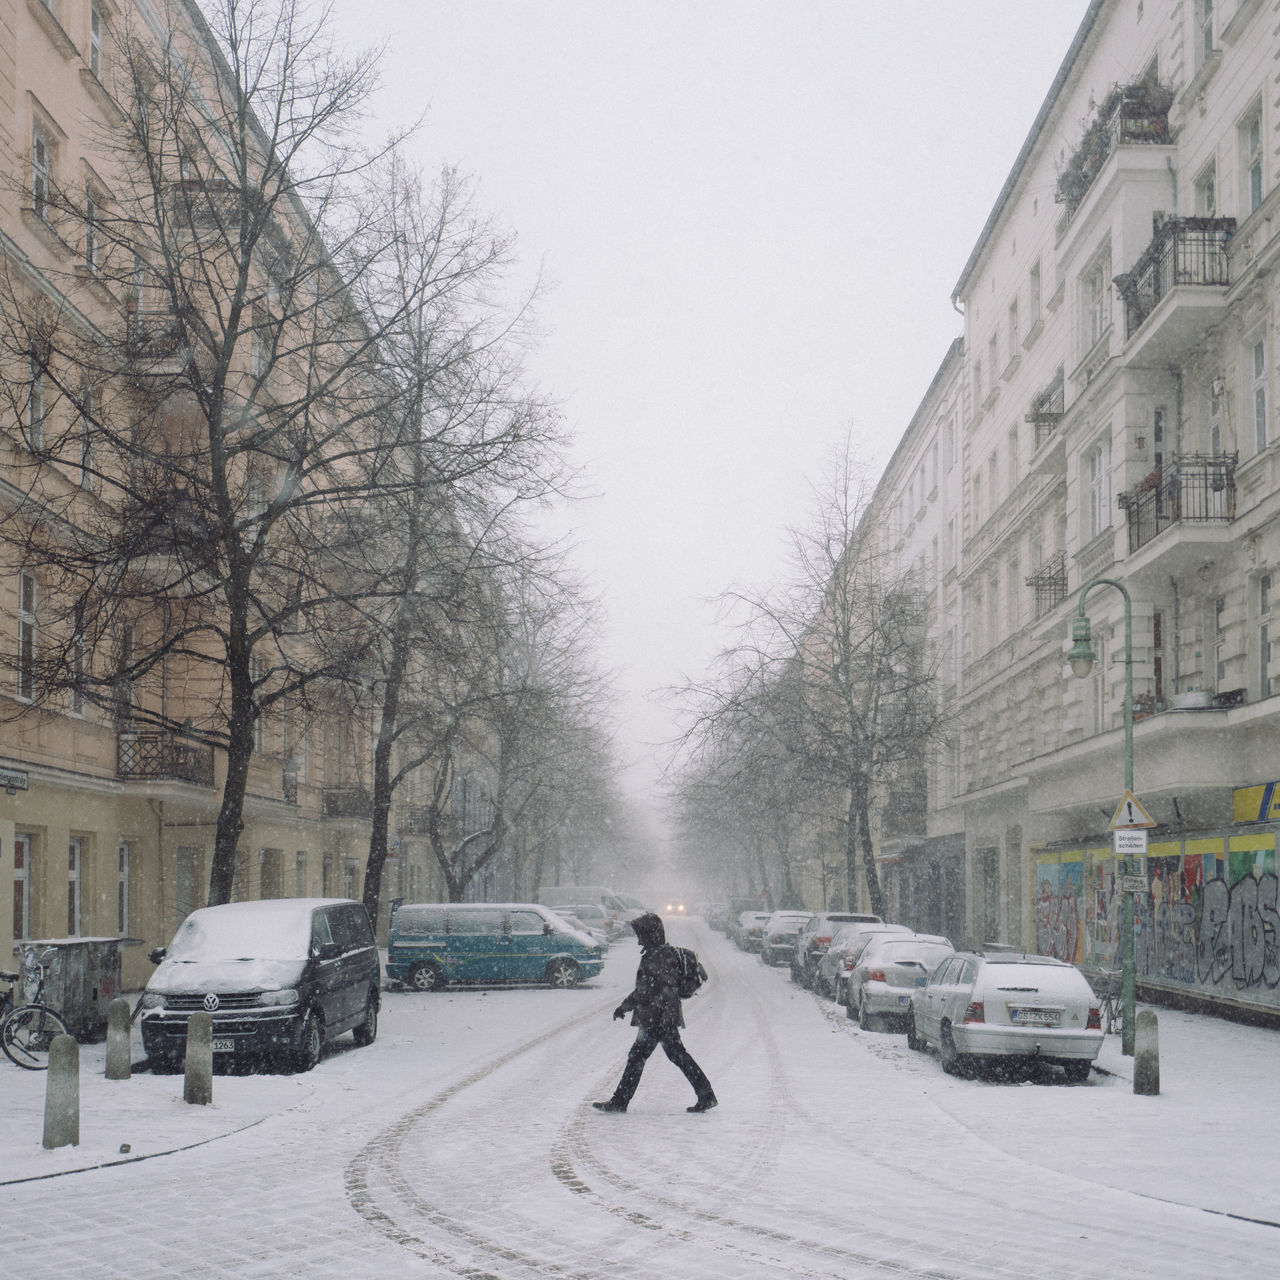 crossing the street Crossing The Street Dailylife Prenzlauer Berg Schneesturm Spuren Im Schnee Strawberry Street Photography Streetphotography Winter